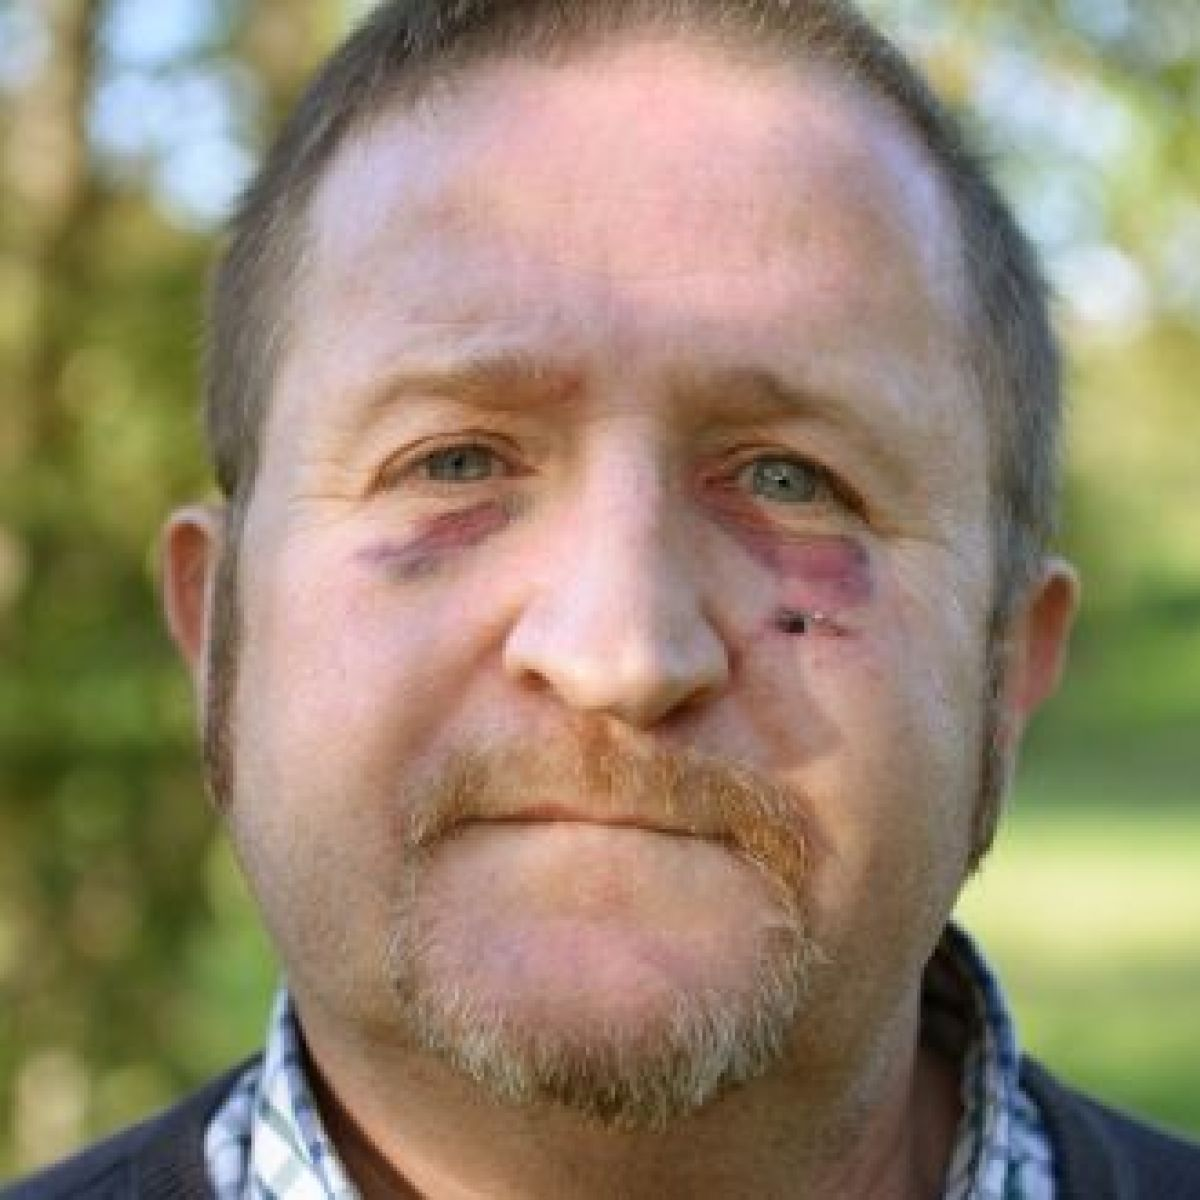 I was victim of anti-gay attack in Newbridge - Councillor